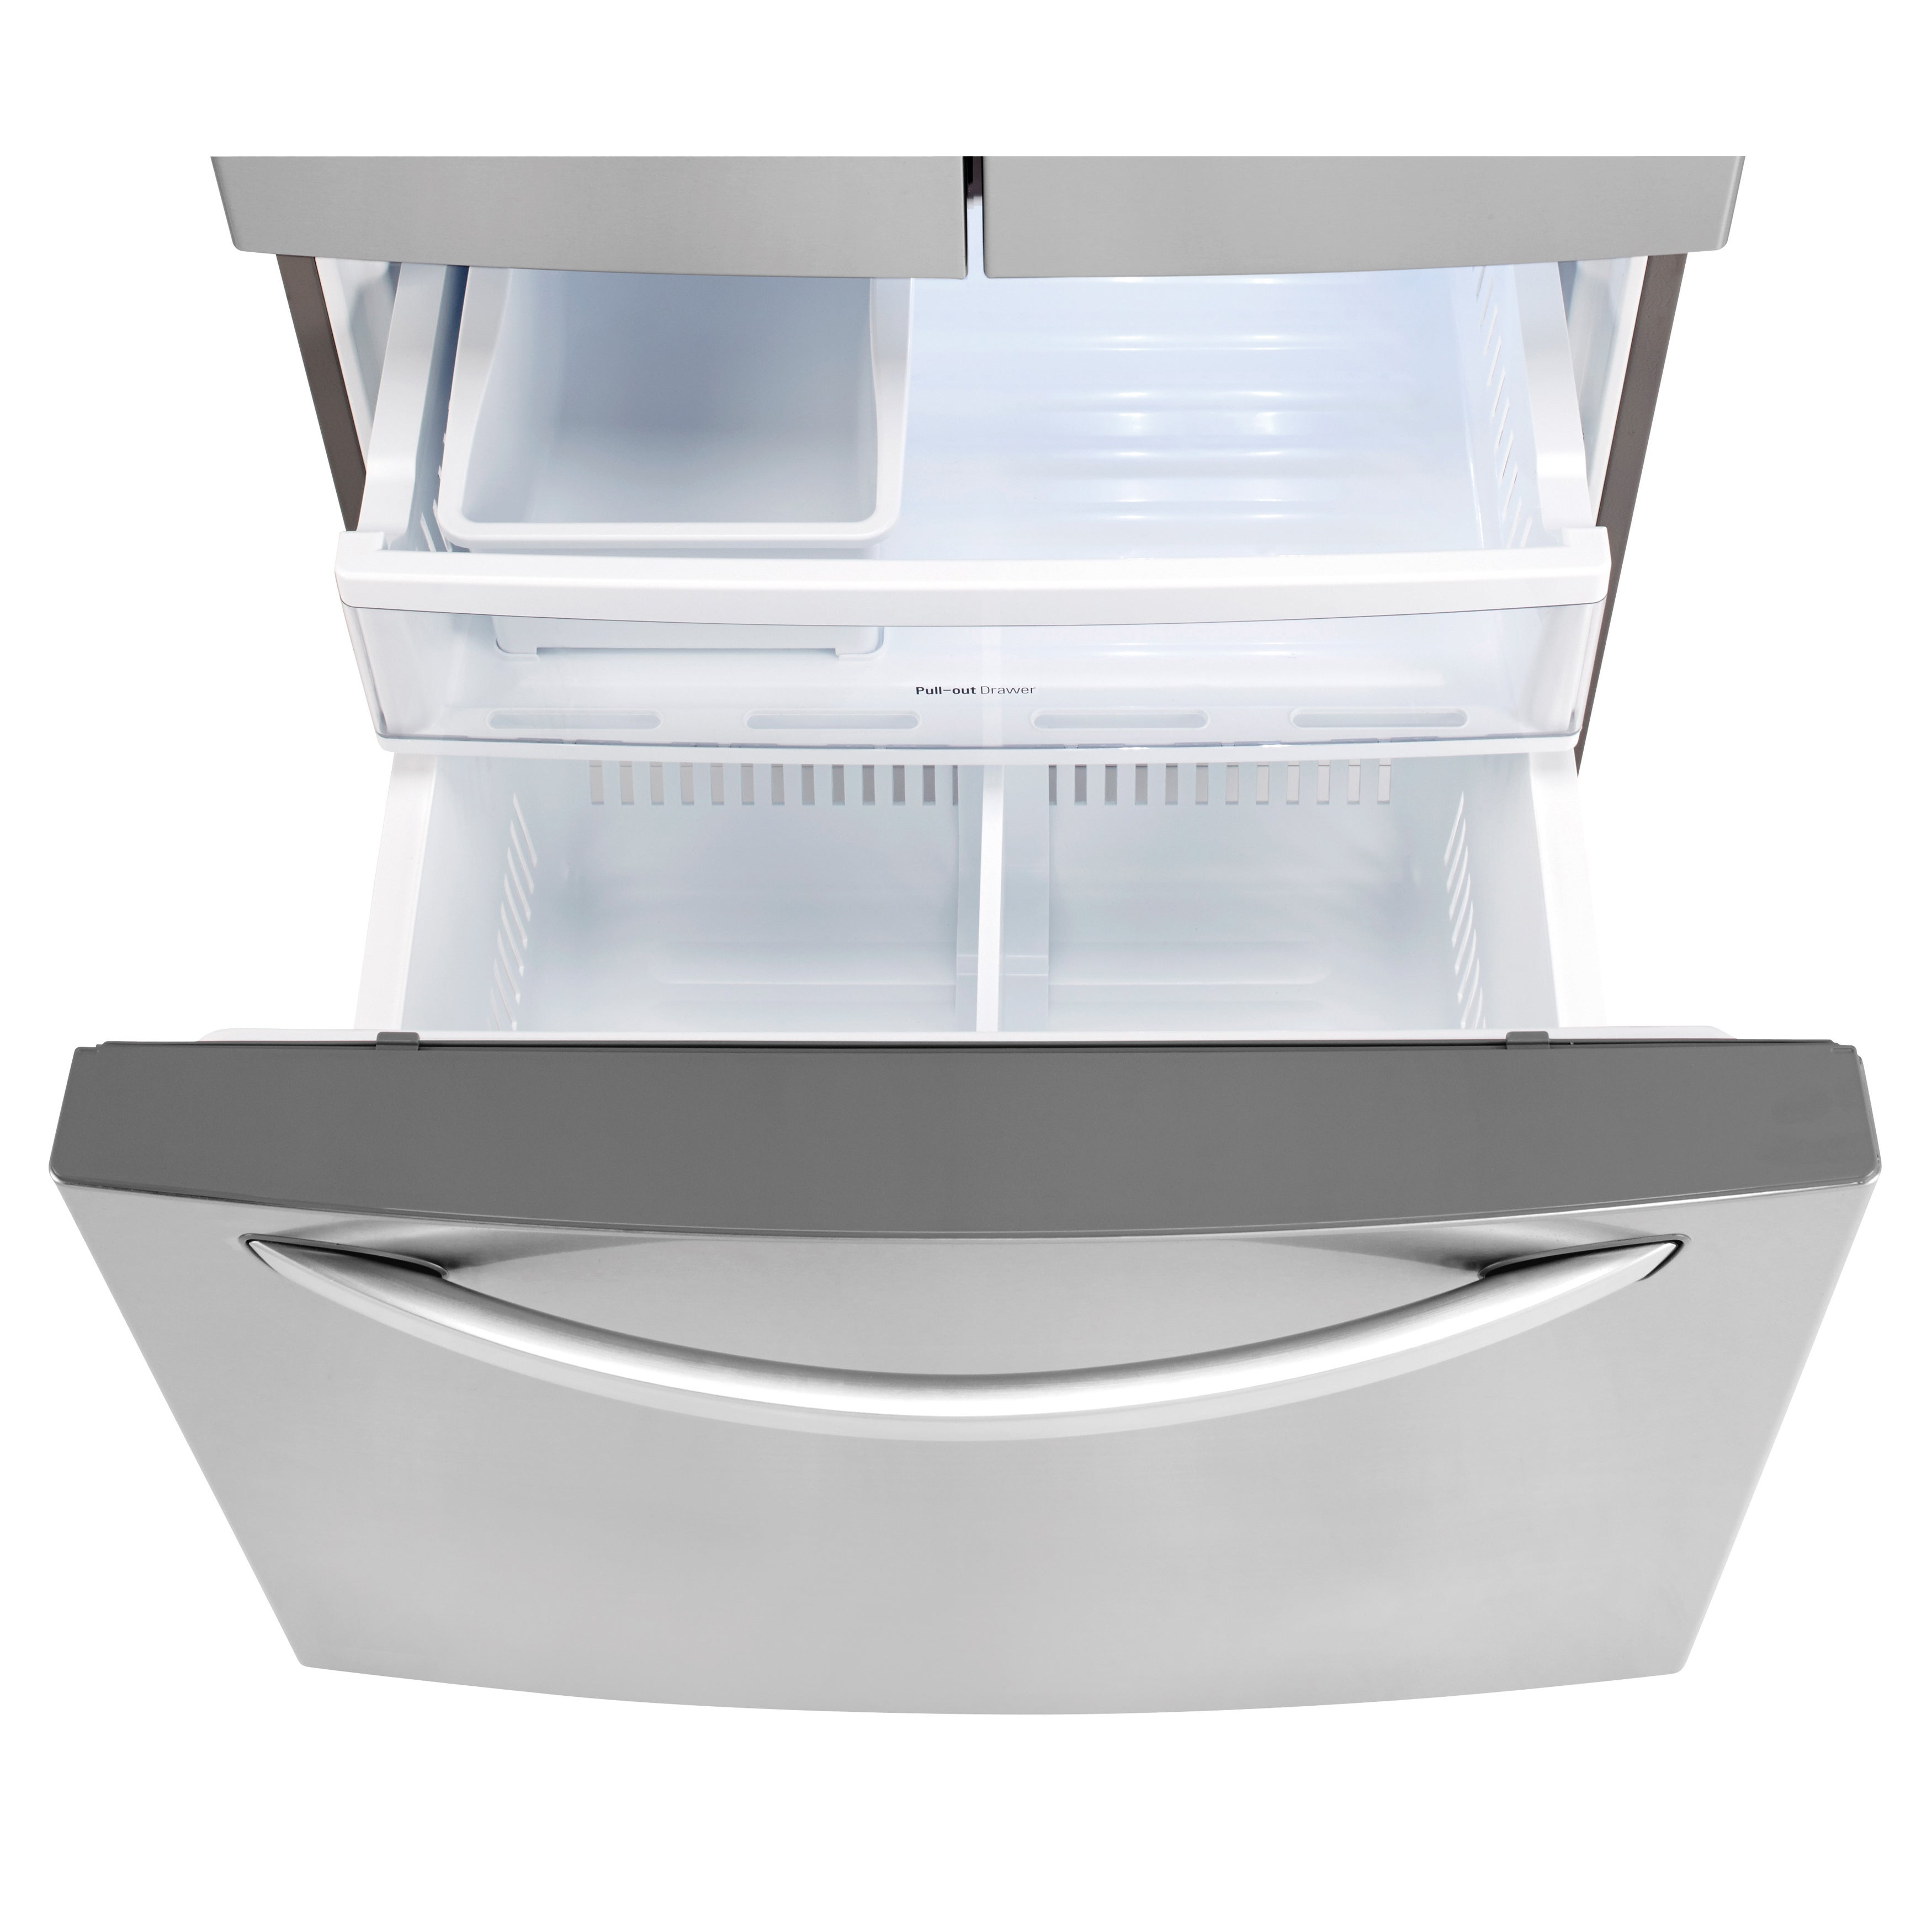 Shop LG 33 Inch French Door Refrigerator   Free Shipping Today    Overstock.com   11488077